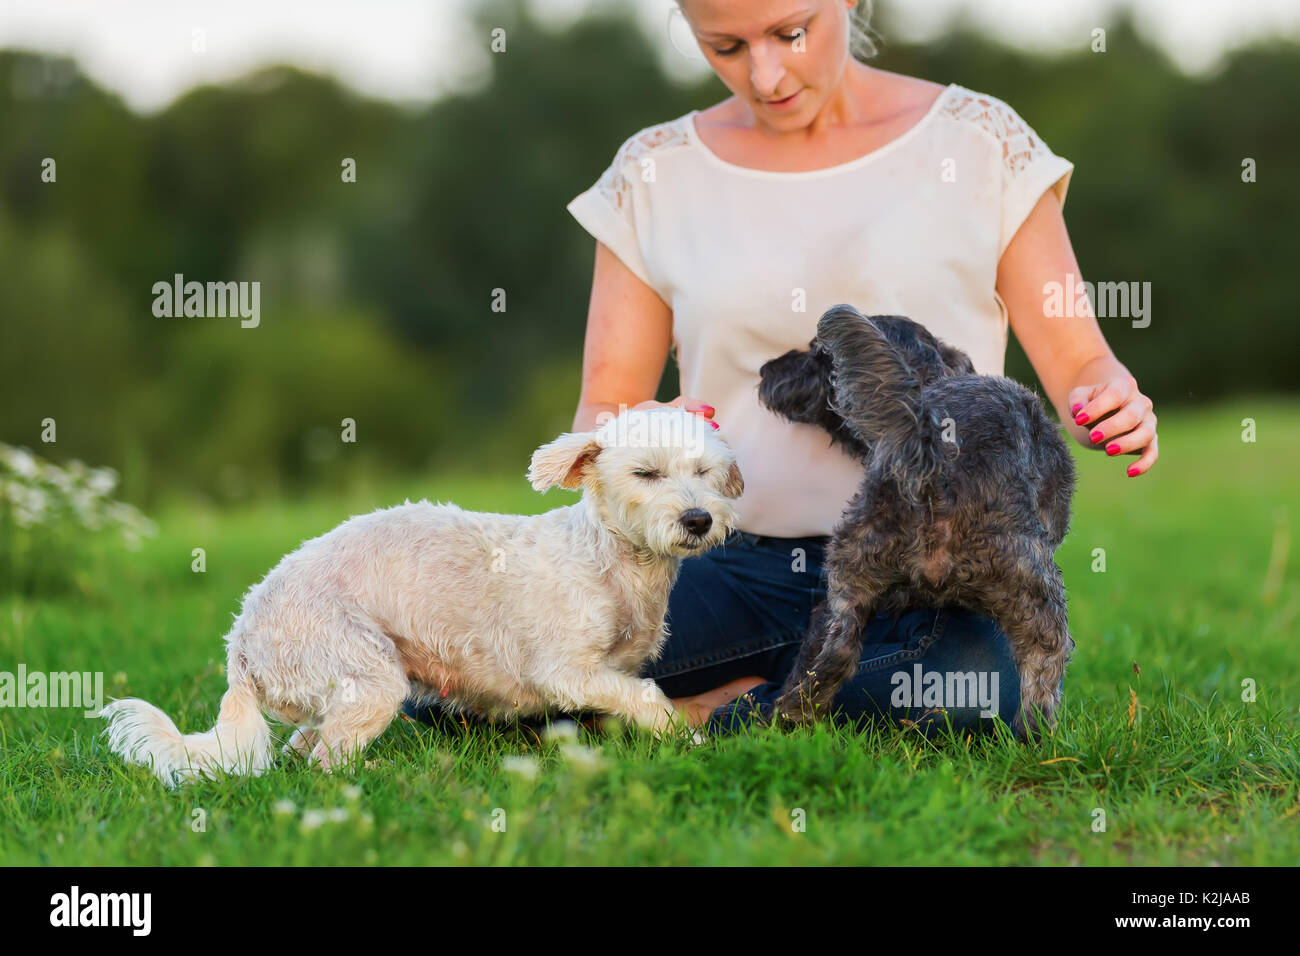 picture of a woman who plays with two terrier hybrid dogs outdoors - Stock Image